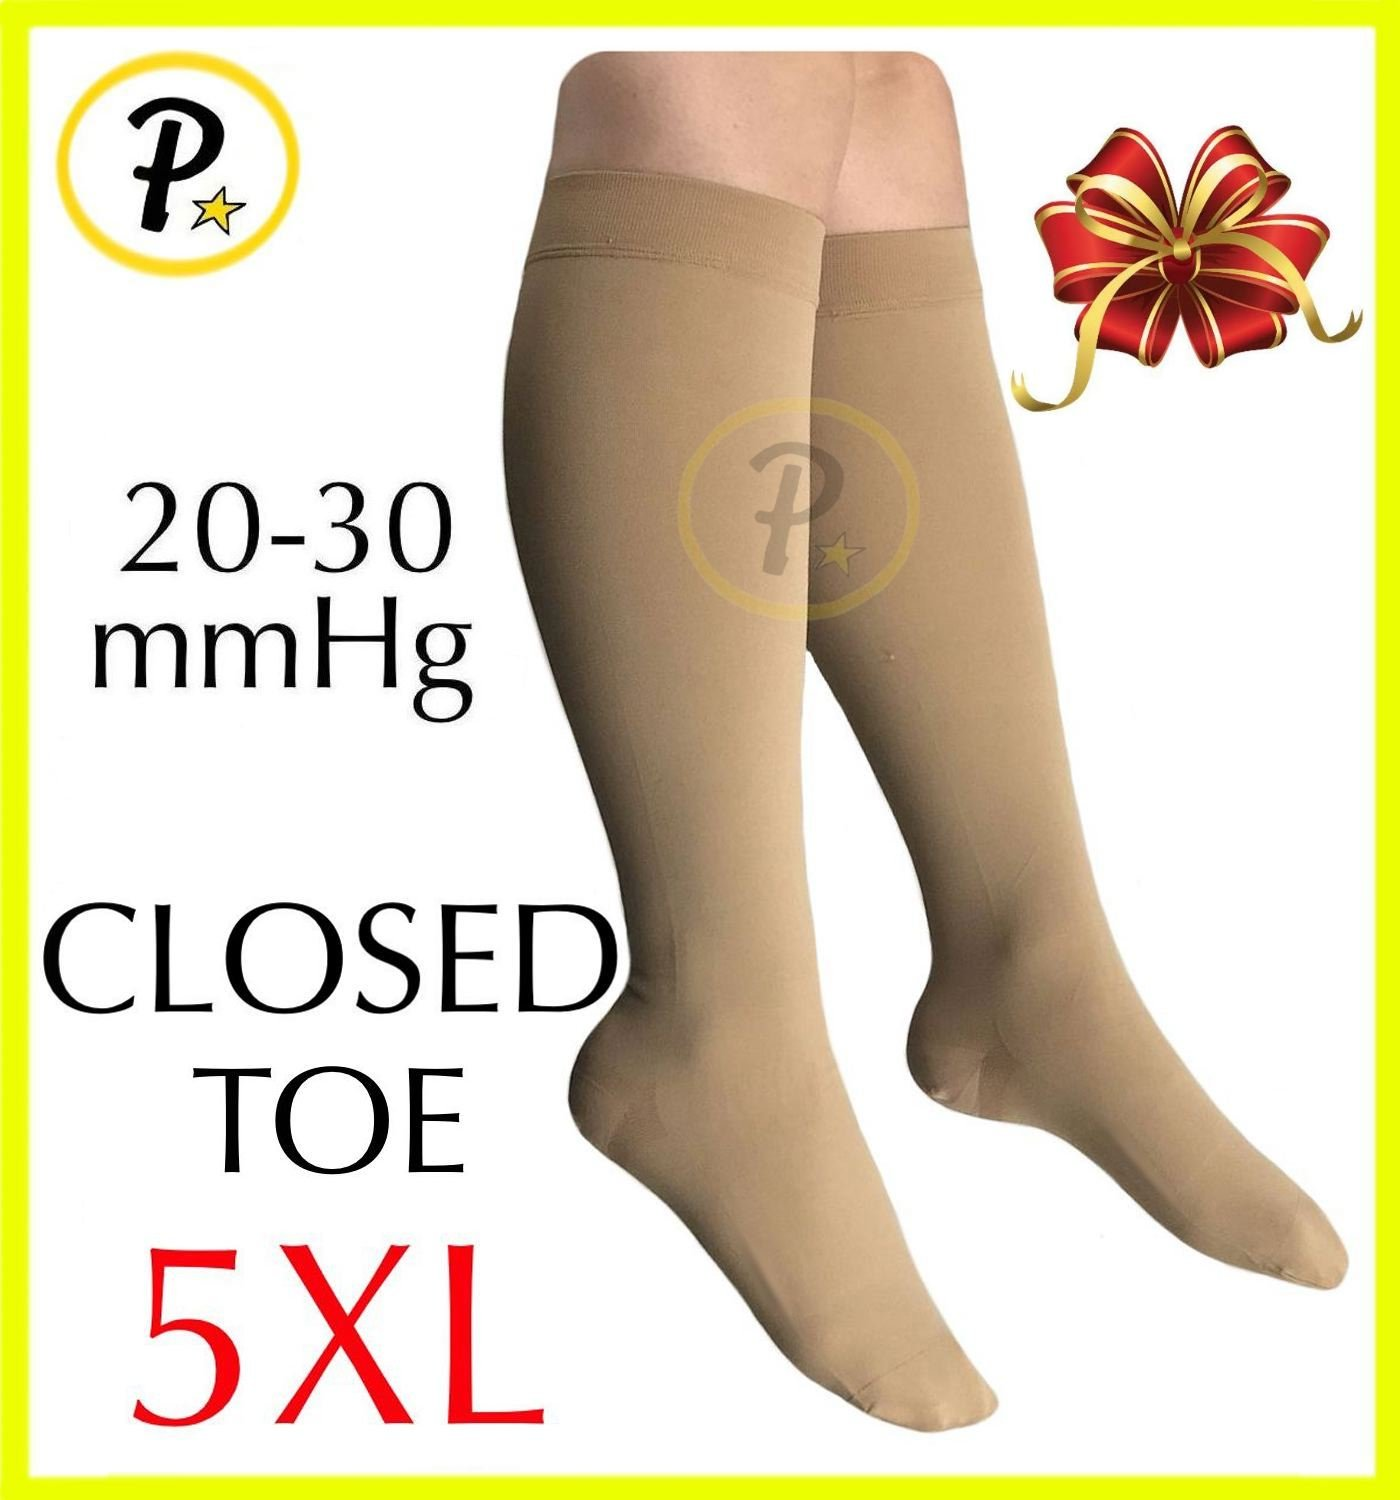 Presadee Closed Toe (Big & Tall Super Size) Traditional 20-30 mmHg Compression Grade Swelling Veins Ankle Calf Leg Sock Support (Beige, 5XL)